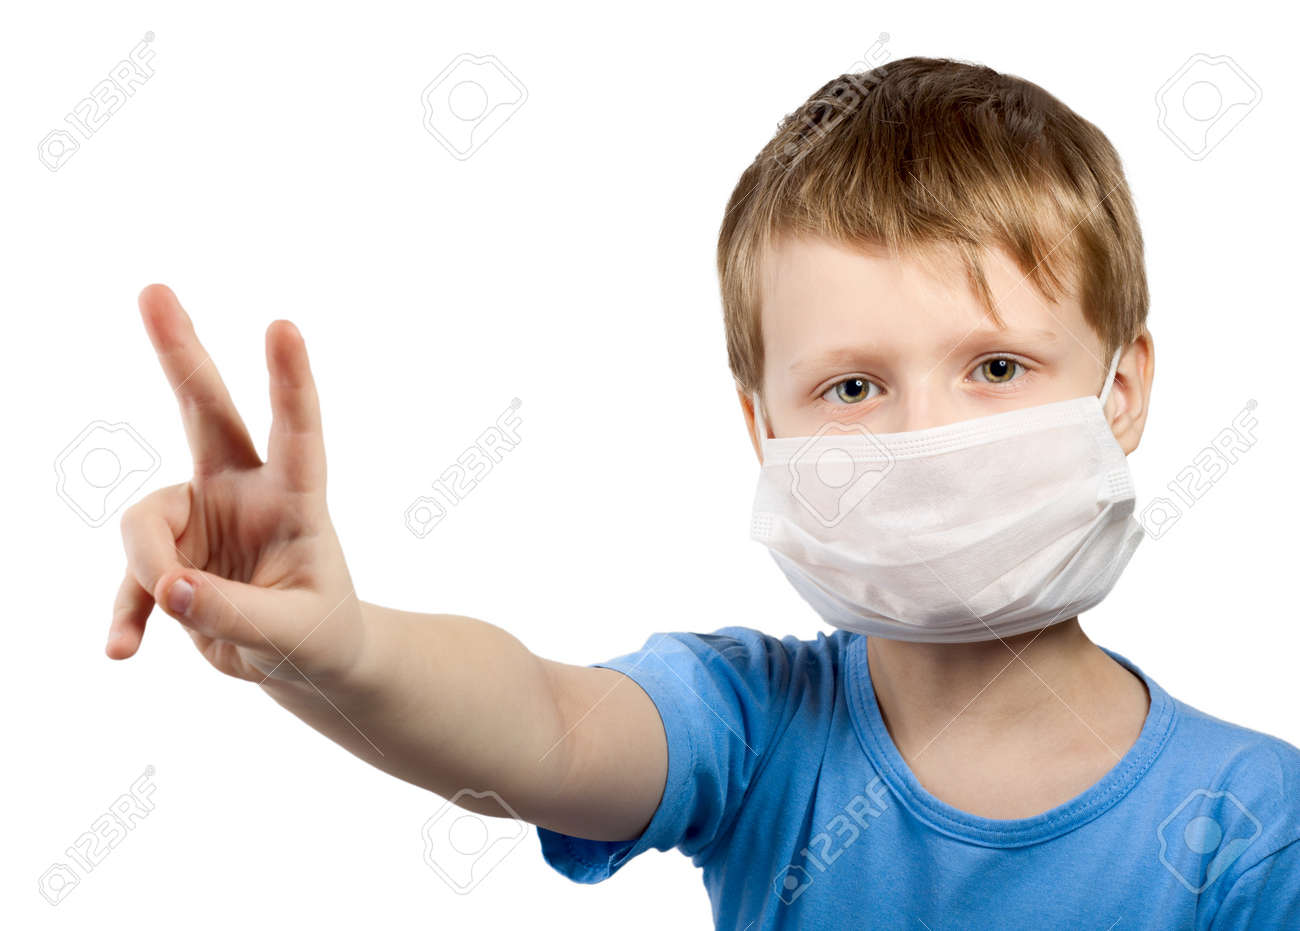 Boy Healthcare Medicine In Isolated Child Flu Mask Illness Surgical